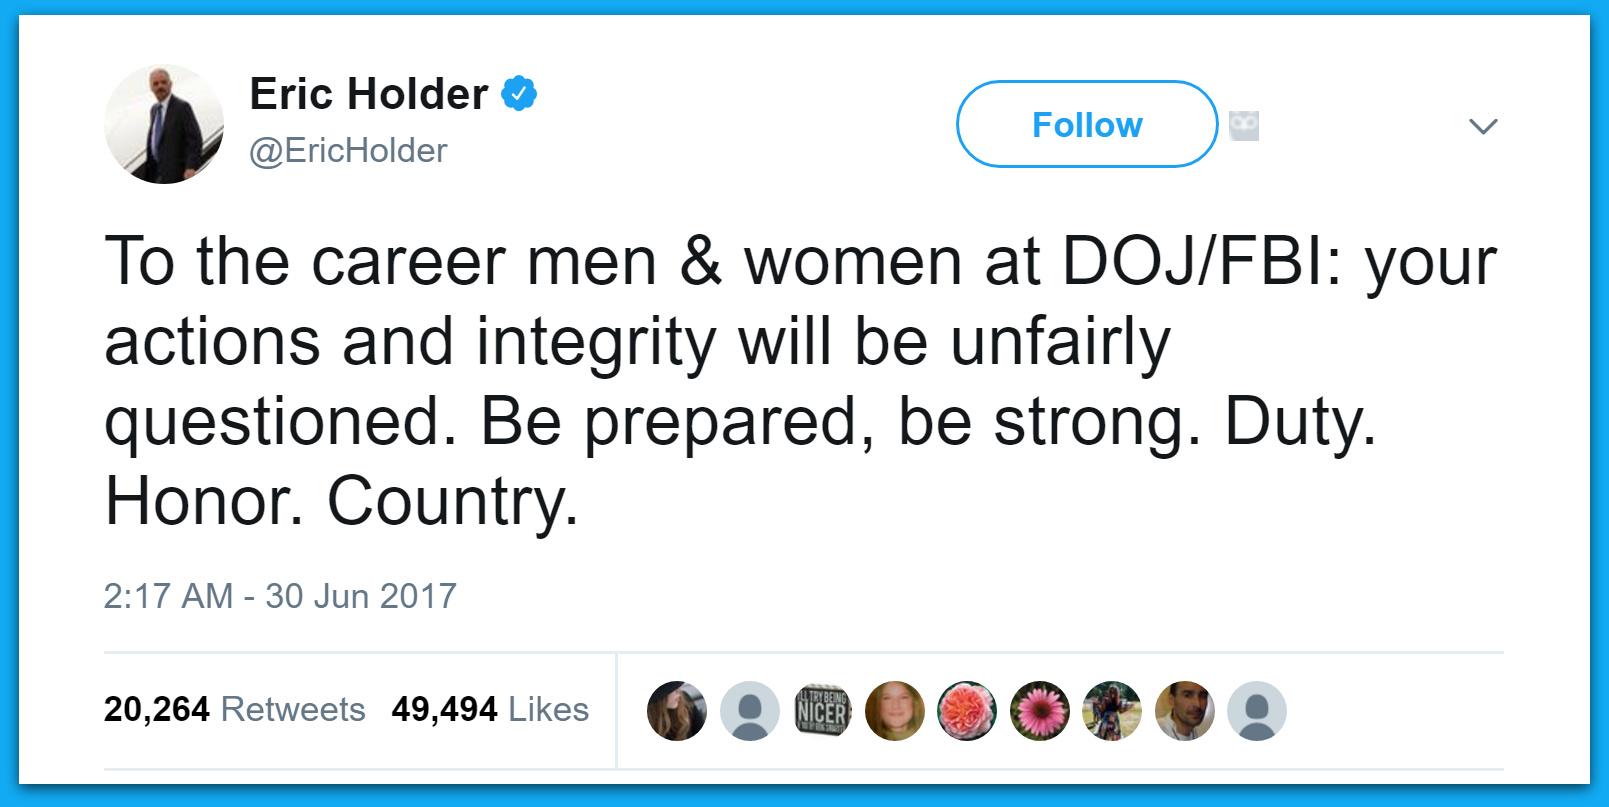 Eric Holder Sends Out Ominous Midnight Tweet